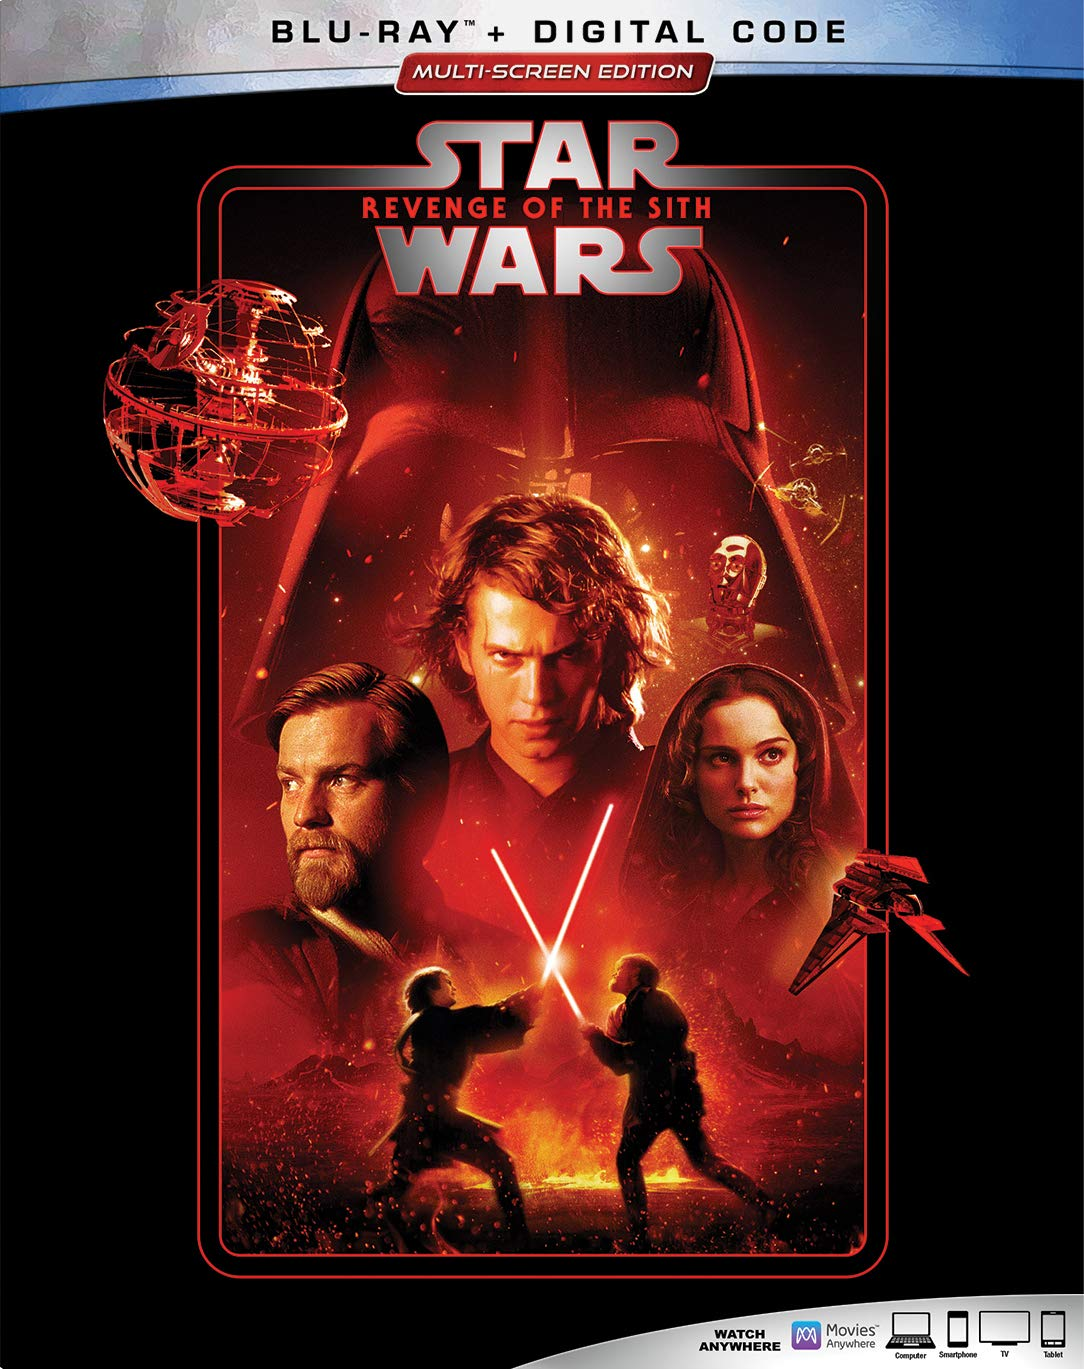 Amazon Com Star Wars Revenge Of The Sith Blu Ray Ewan Mcgregor Natalie Portman Hayden Christensen Ian Mcdiarmid Frank Oz Jimmy Smits Peter Mayhew Ahmed Best Oliver Ford Davies Temuera Morrison Anthony Daniels Silas